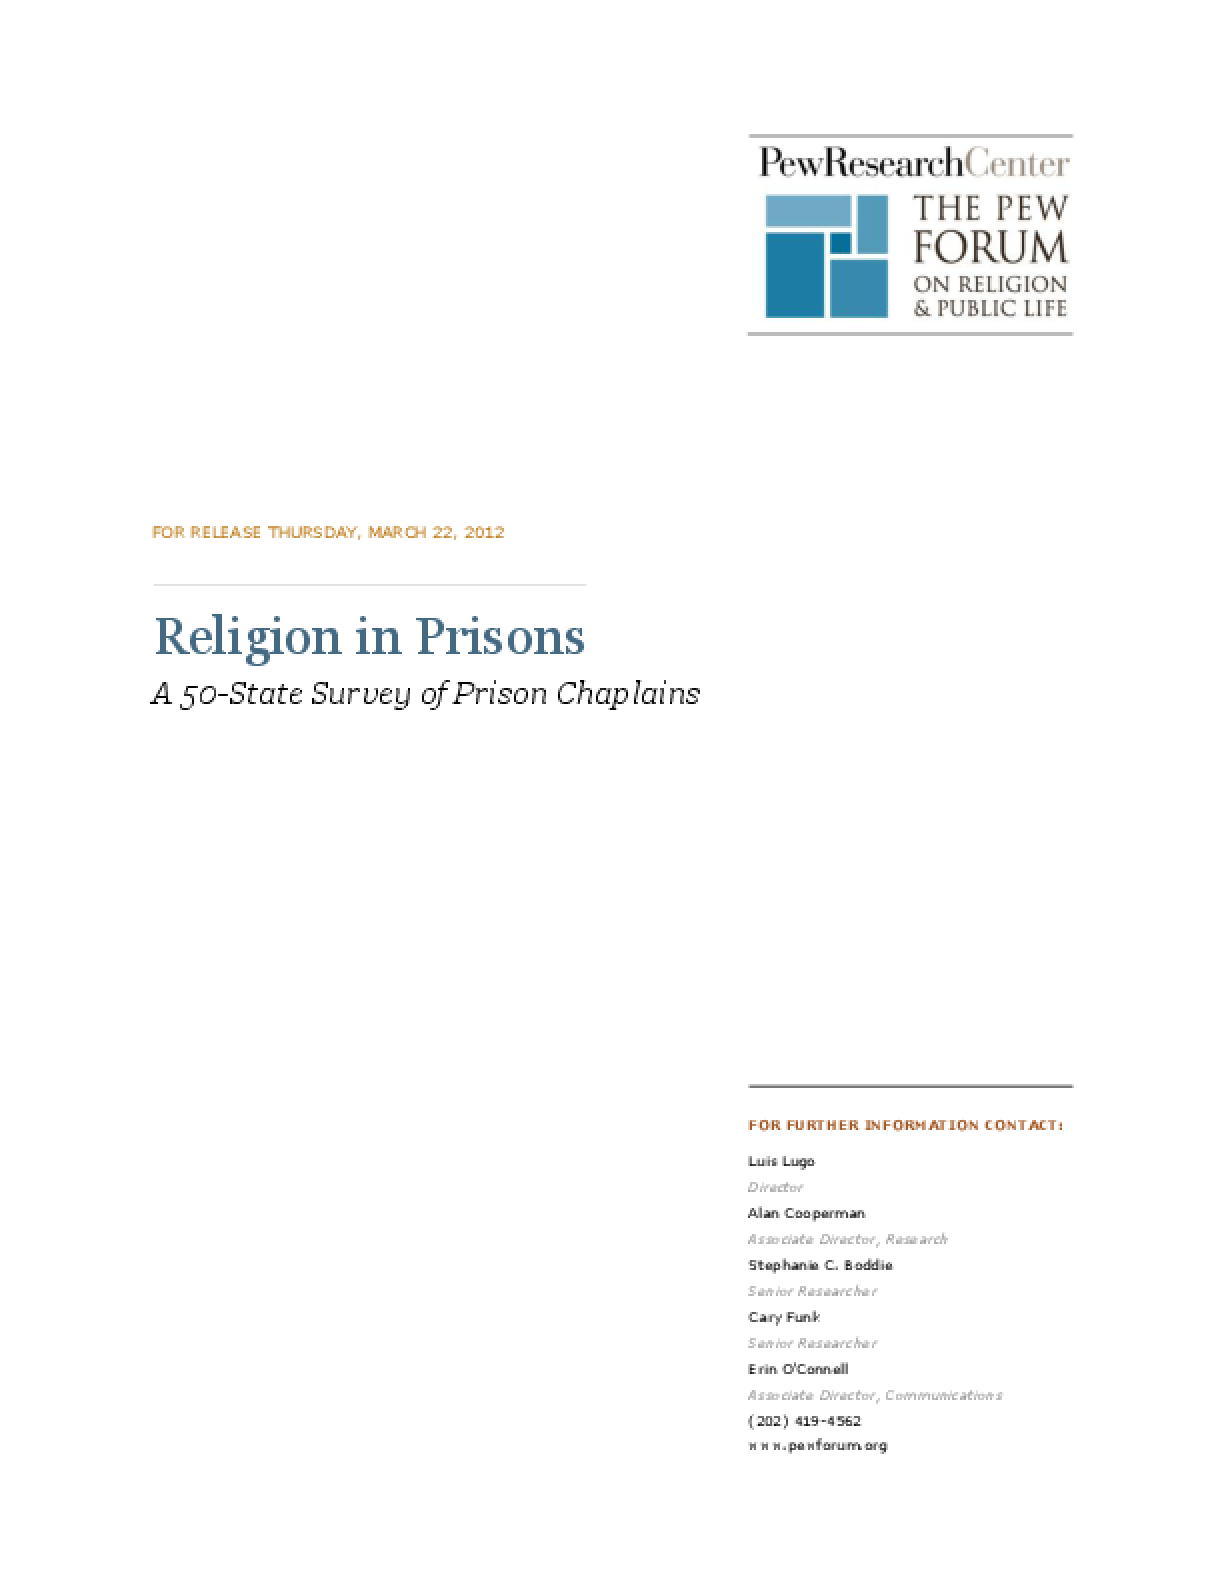 Religion in Prisons: A 50-State Survey of Prison Chaplains